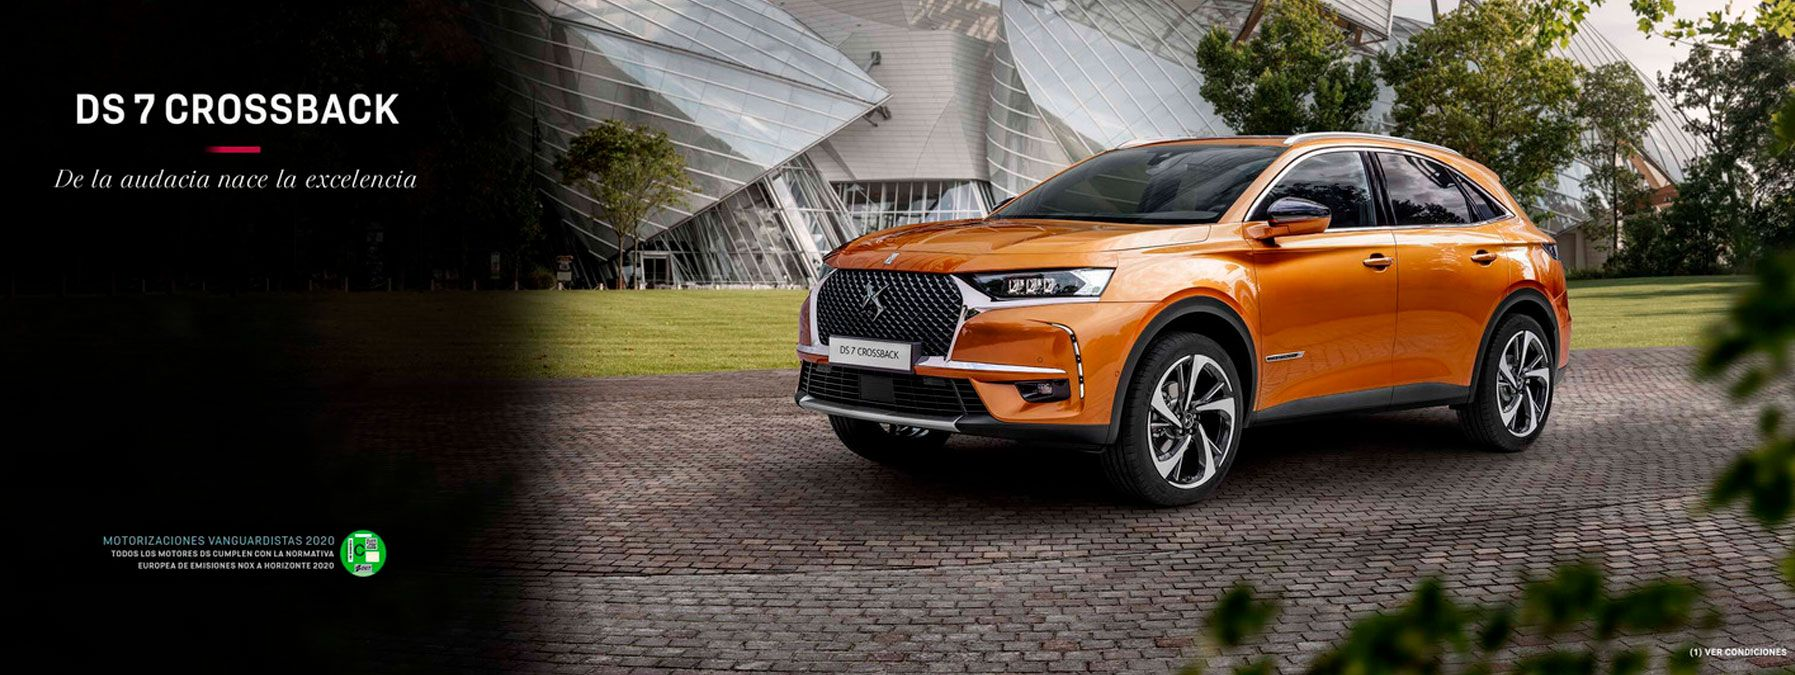 DS7 CROSSBACK.